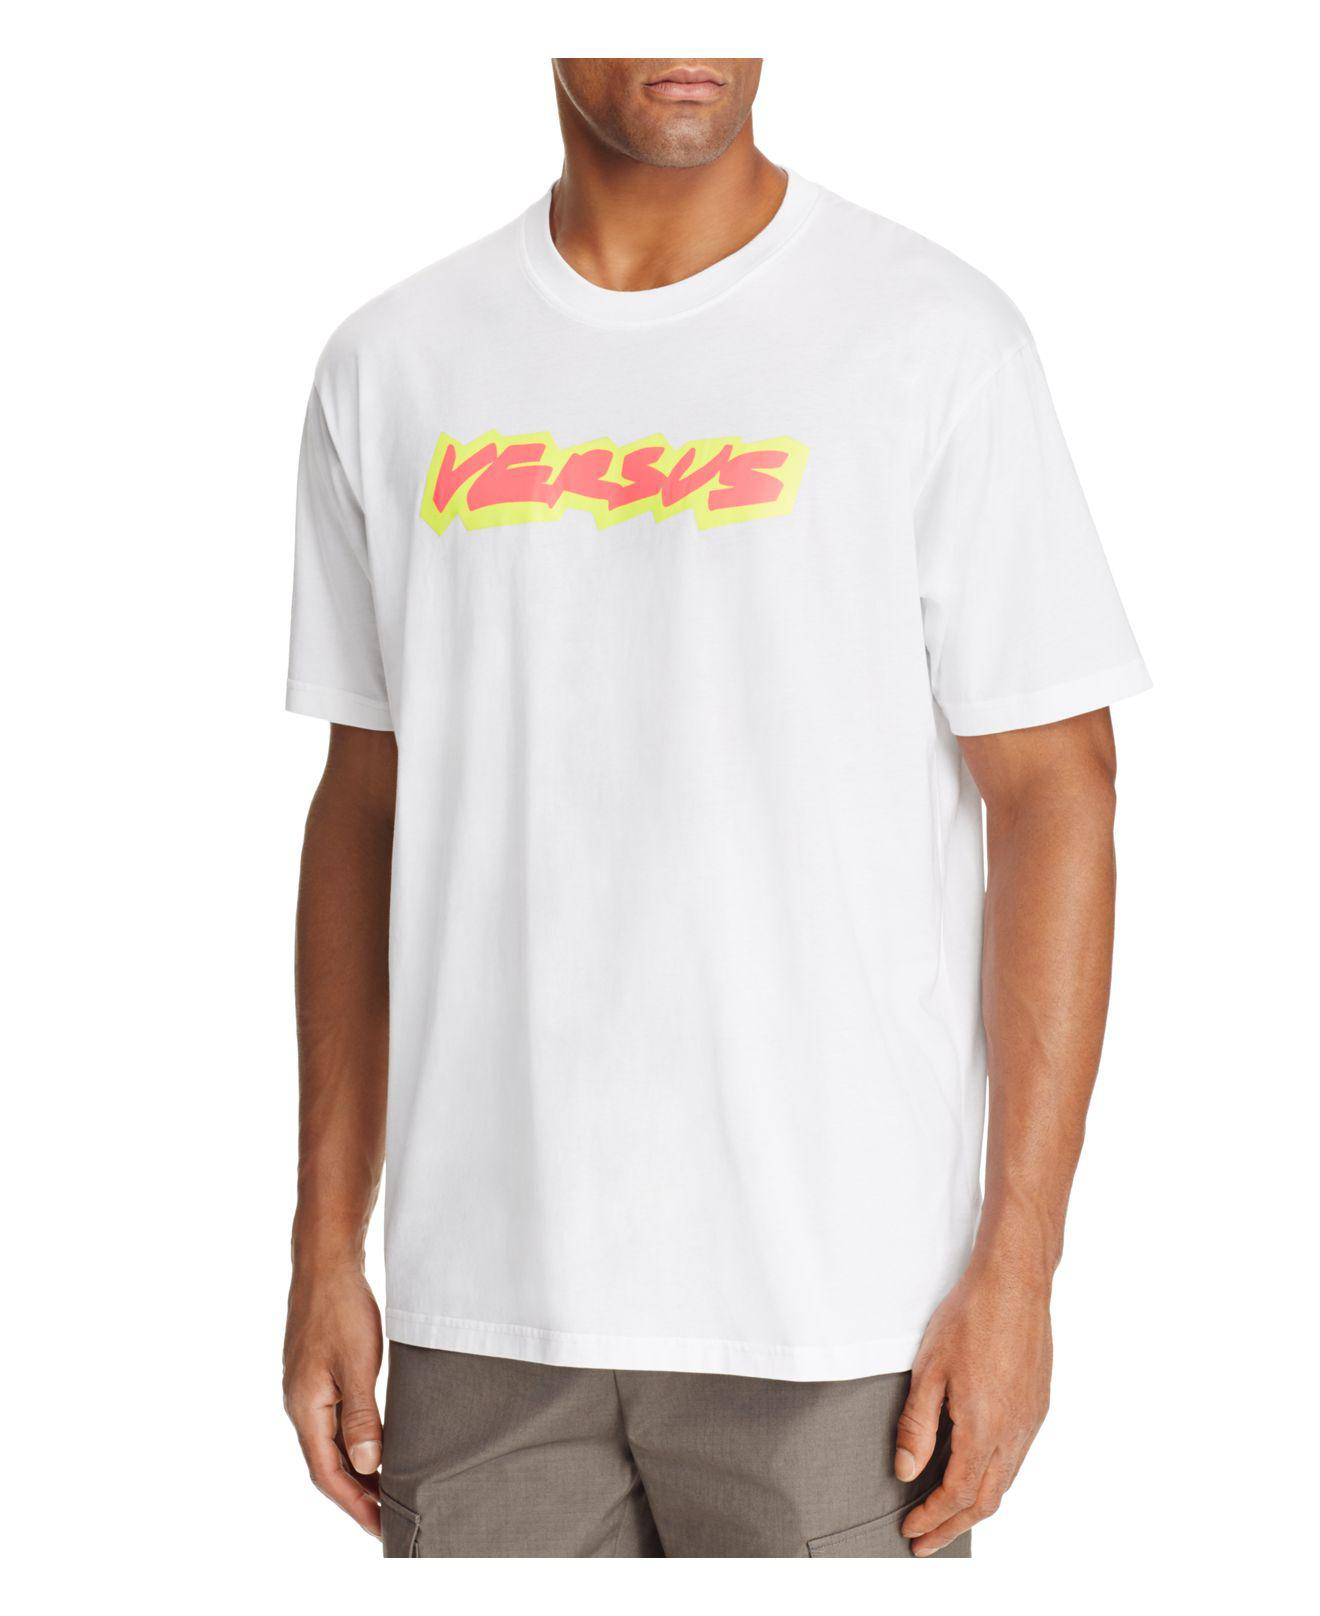 neon logo t-shirt Versus Cheap Sale Clearance Store New Lower Prices For Sale Official Site Cheap Shopping Online Cheap Sale Ebay HUL3LPE